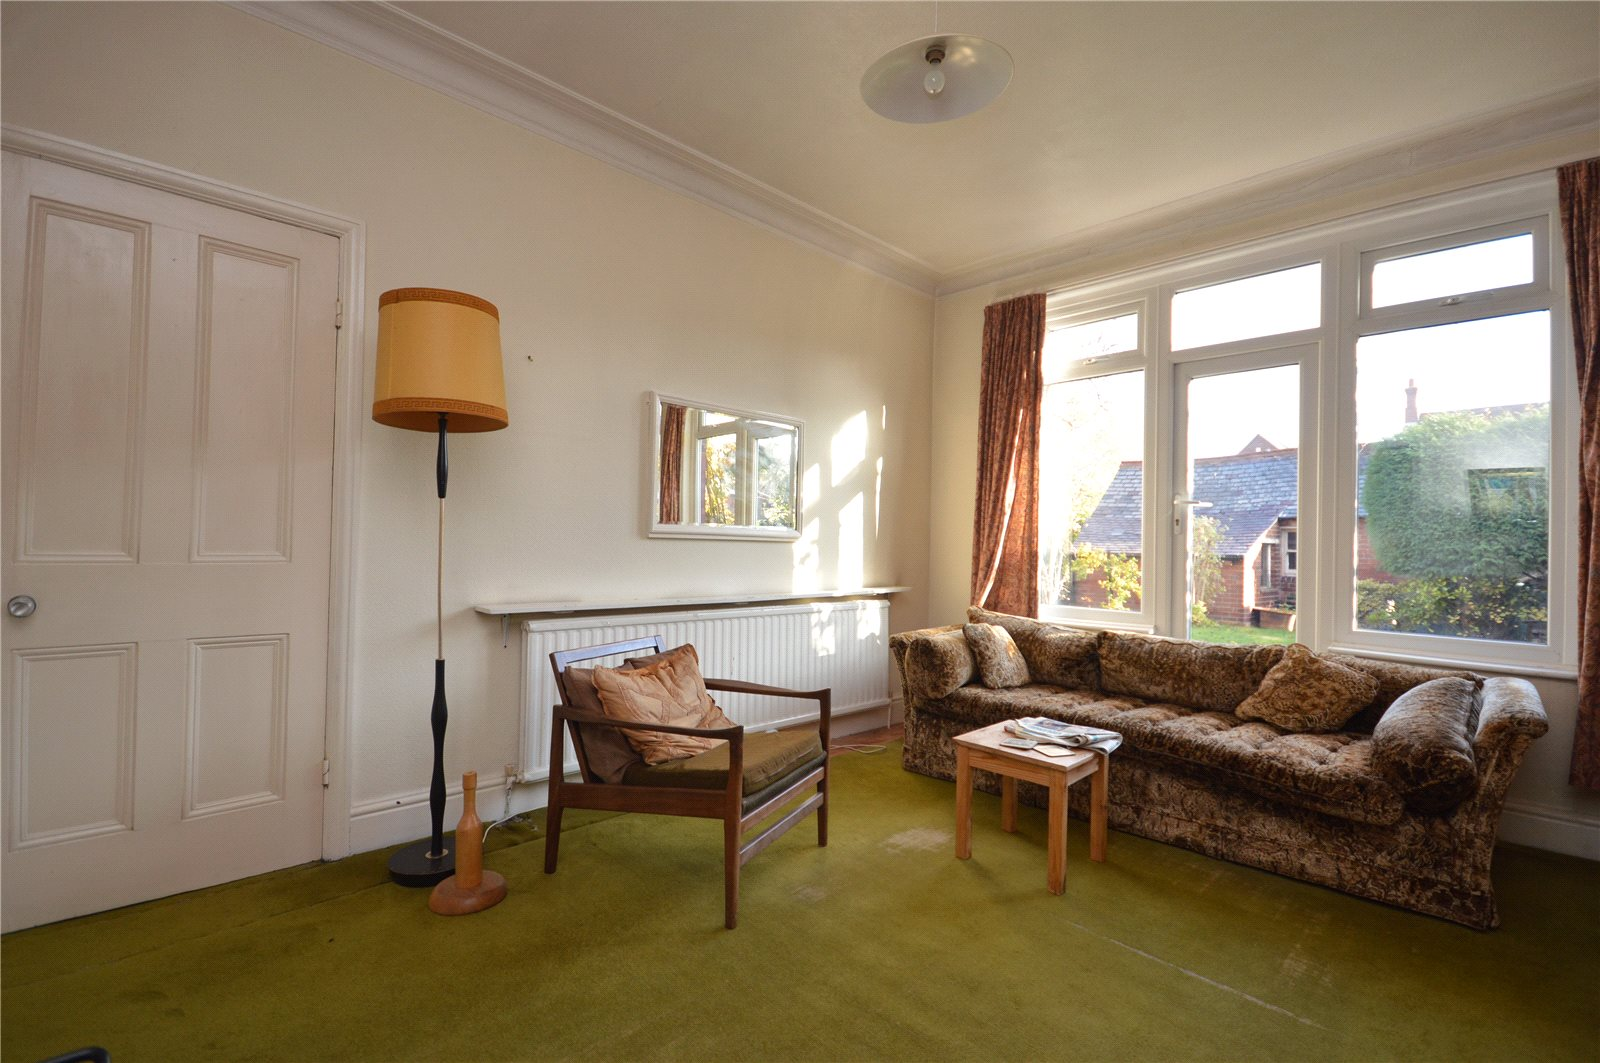 Property for sale in Wakefield, interior reception room